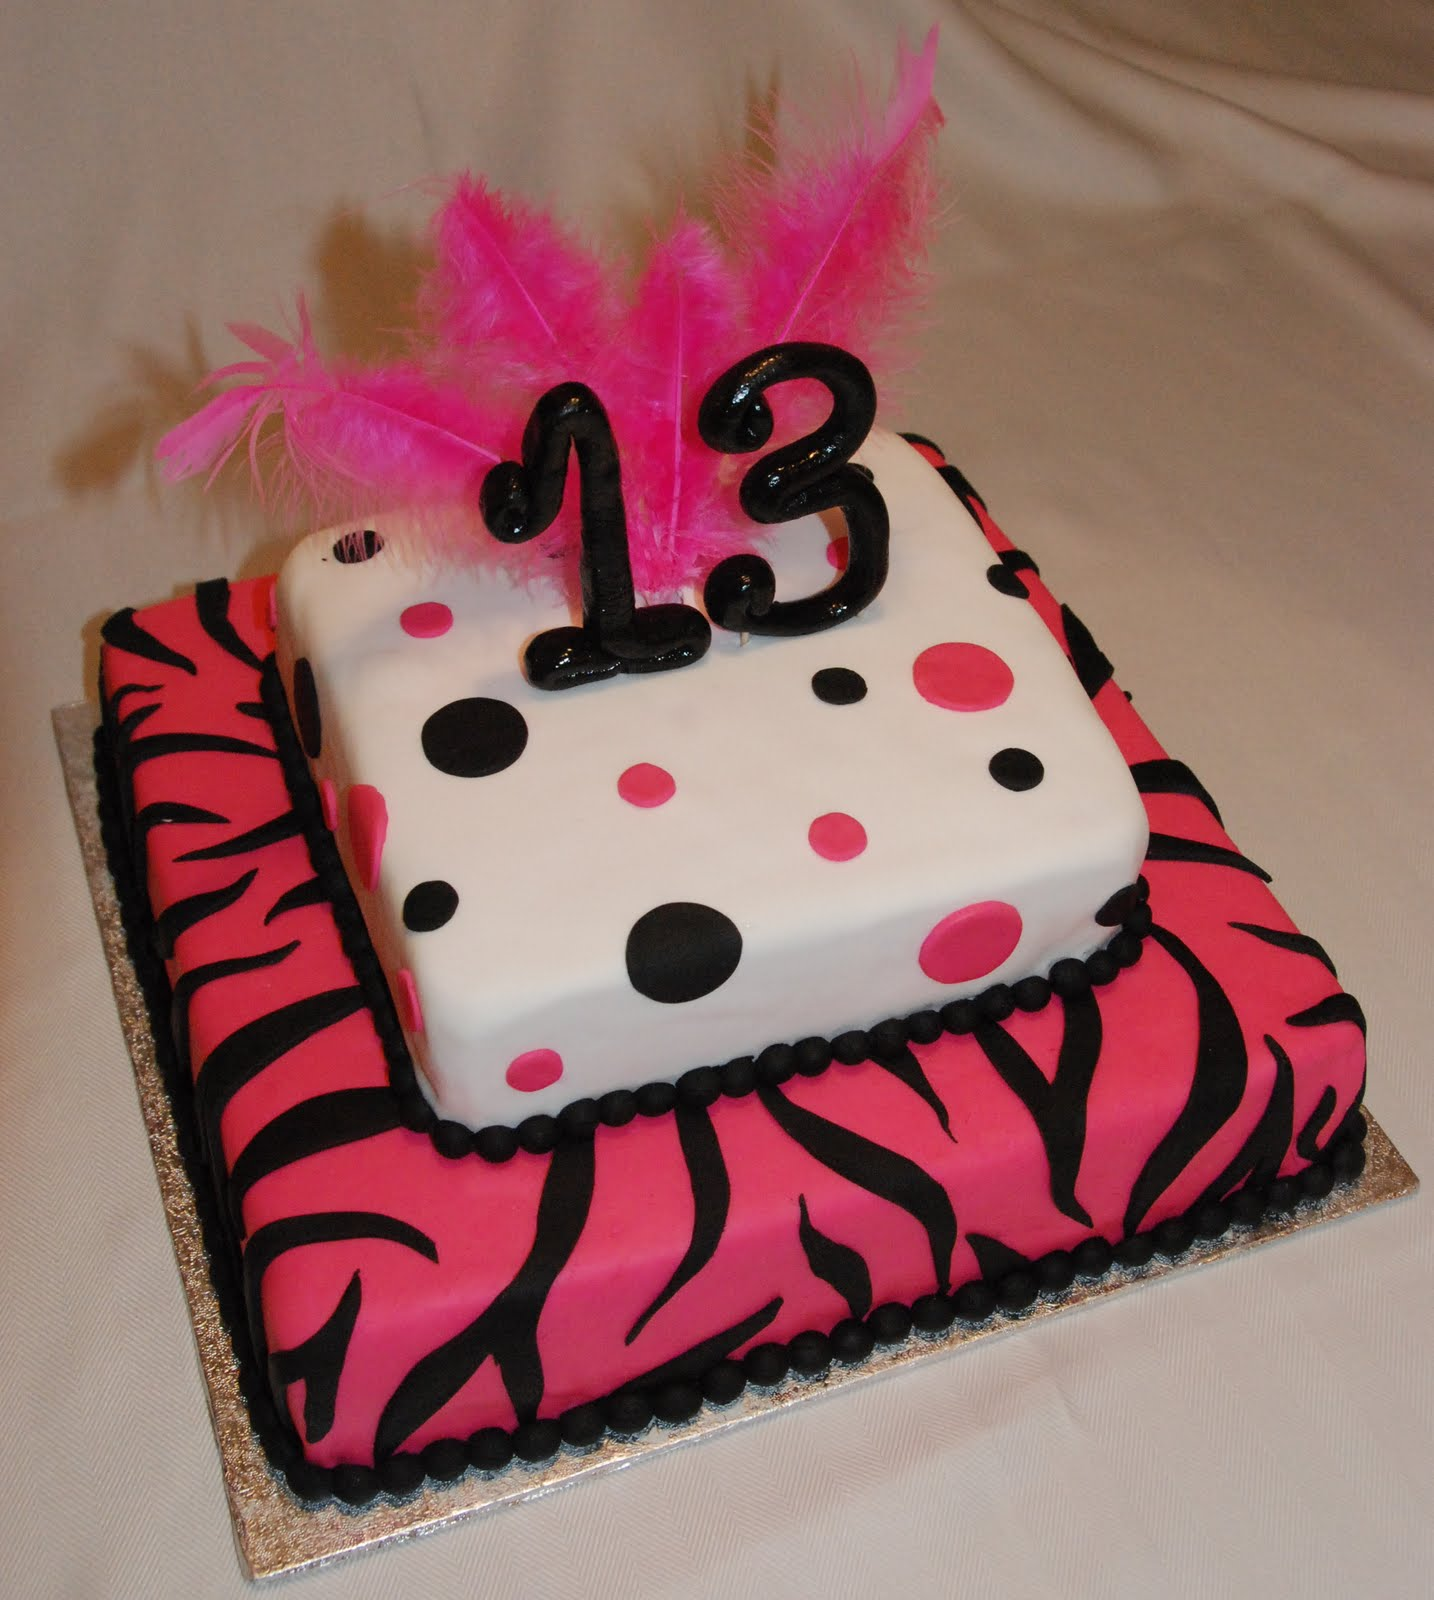 Cake Creations by Trish 13th Birthday Cake